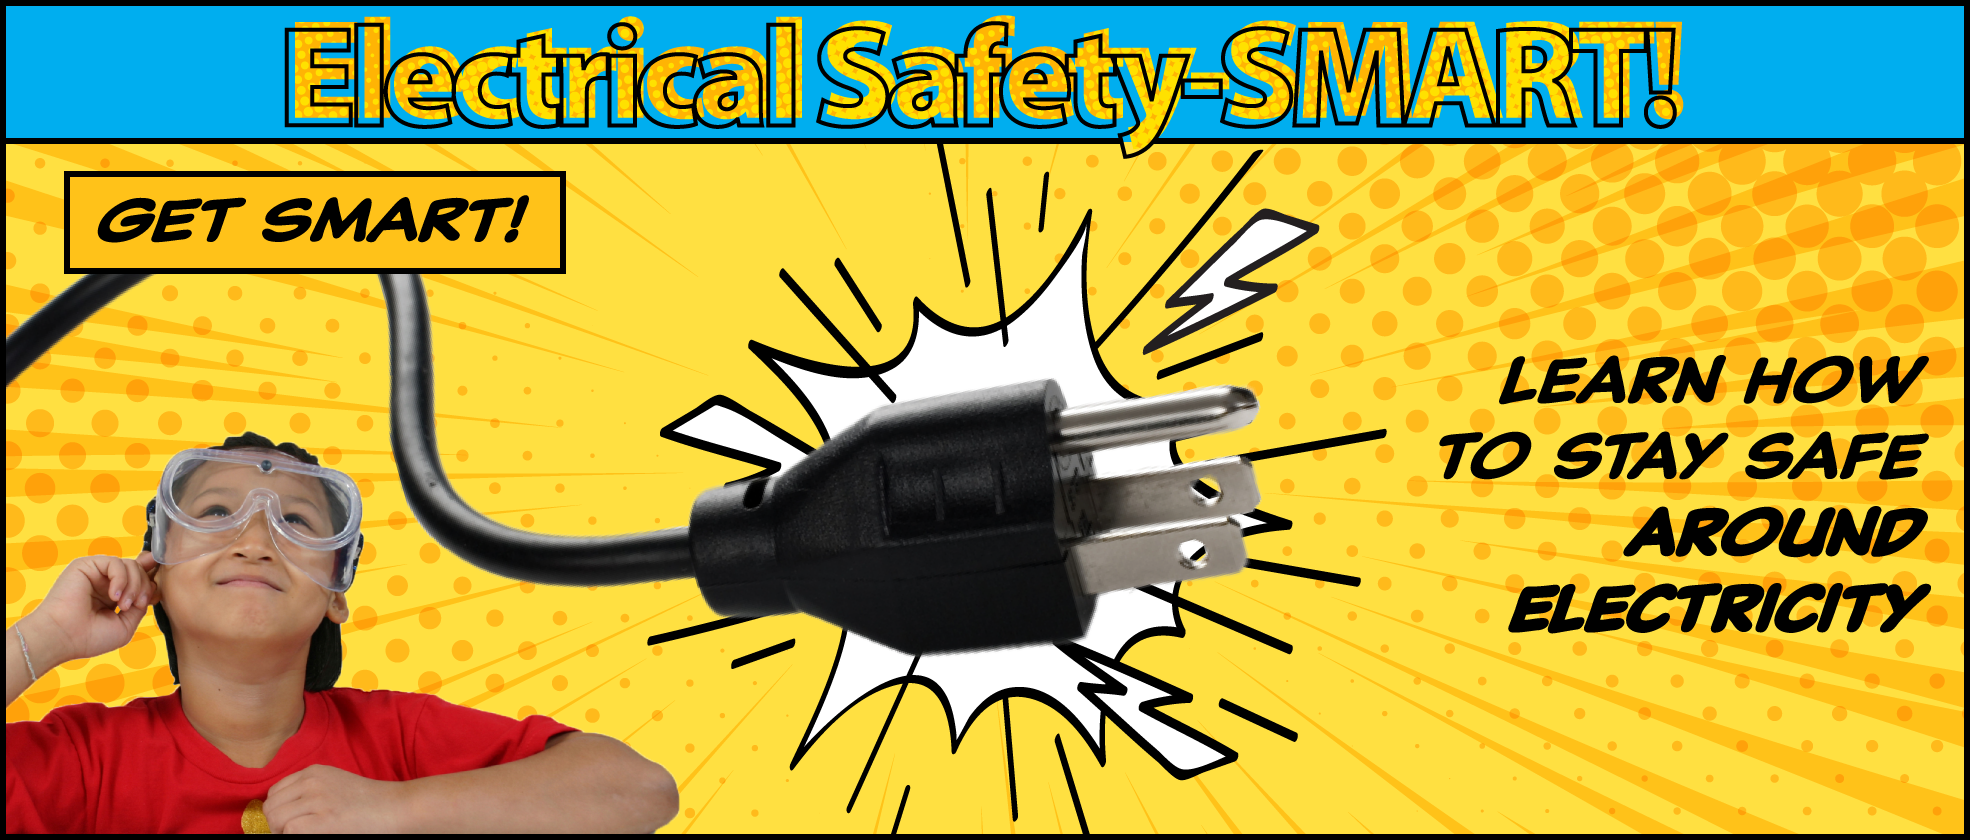 Electrical Safety-SMART: Get SMART! Learn how to stay safe around electricity